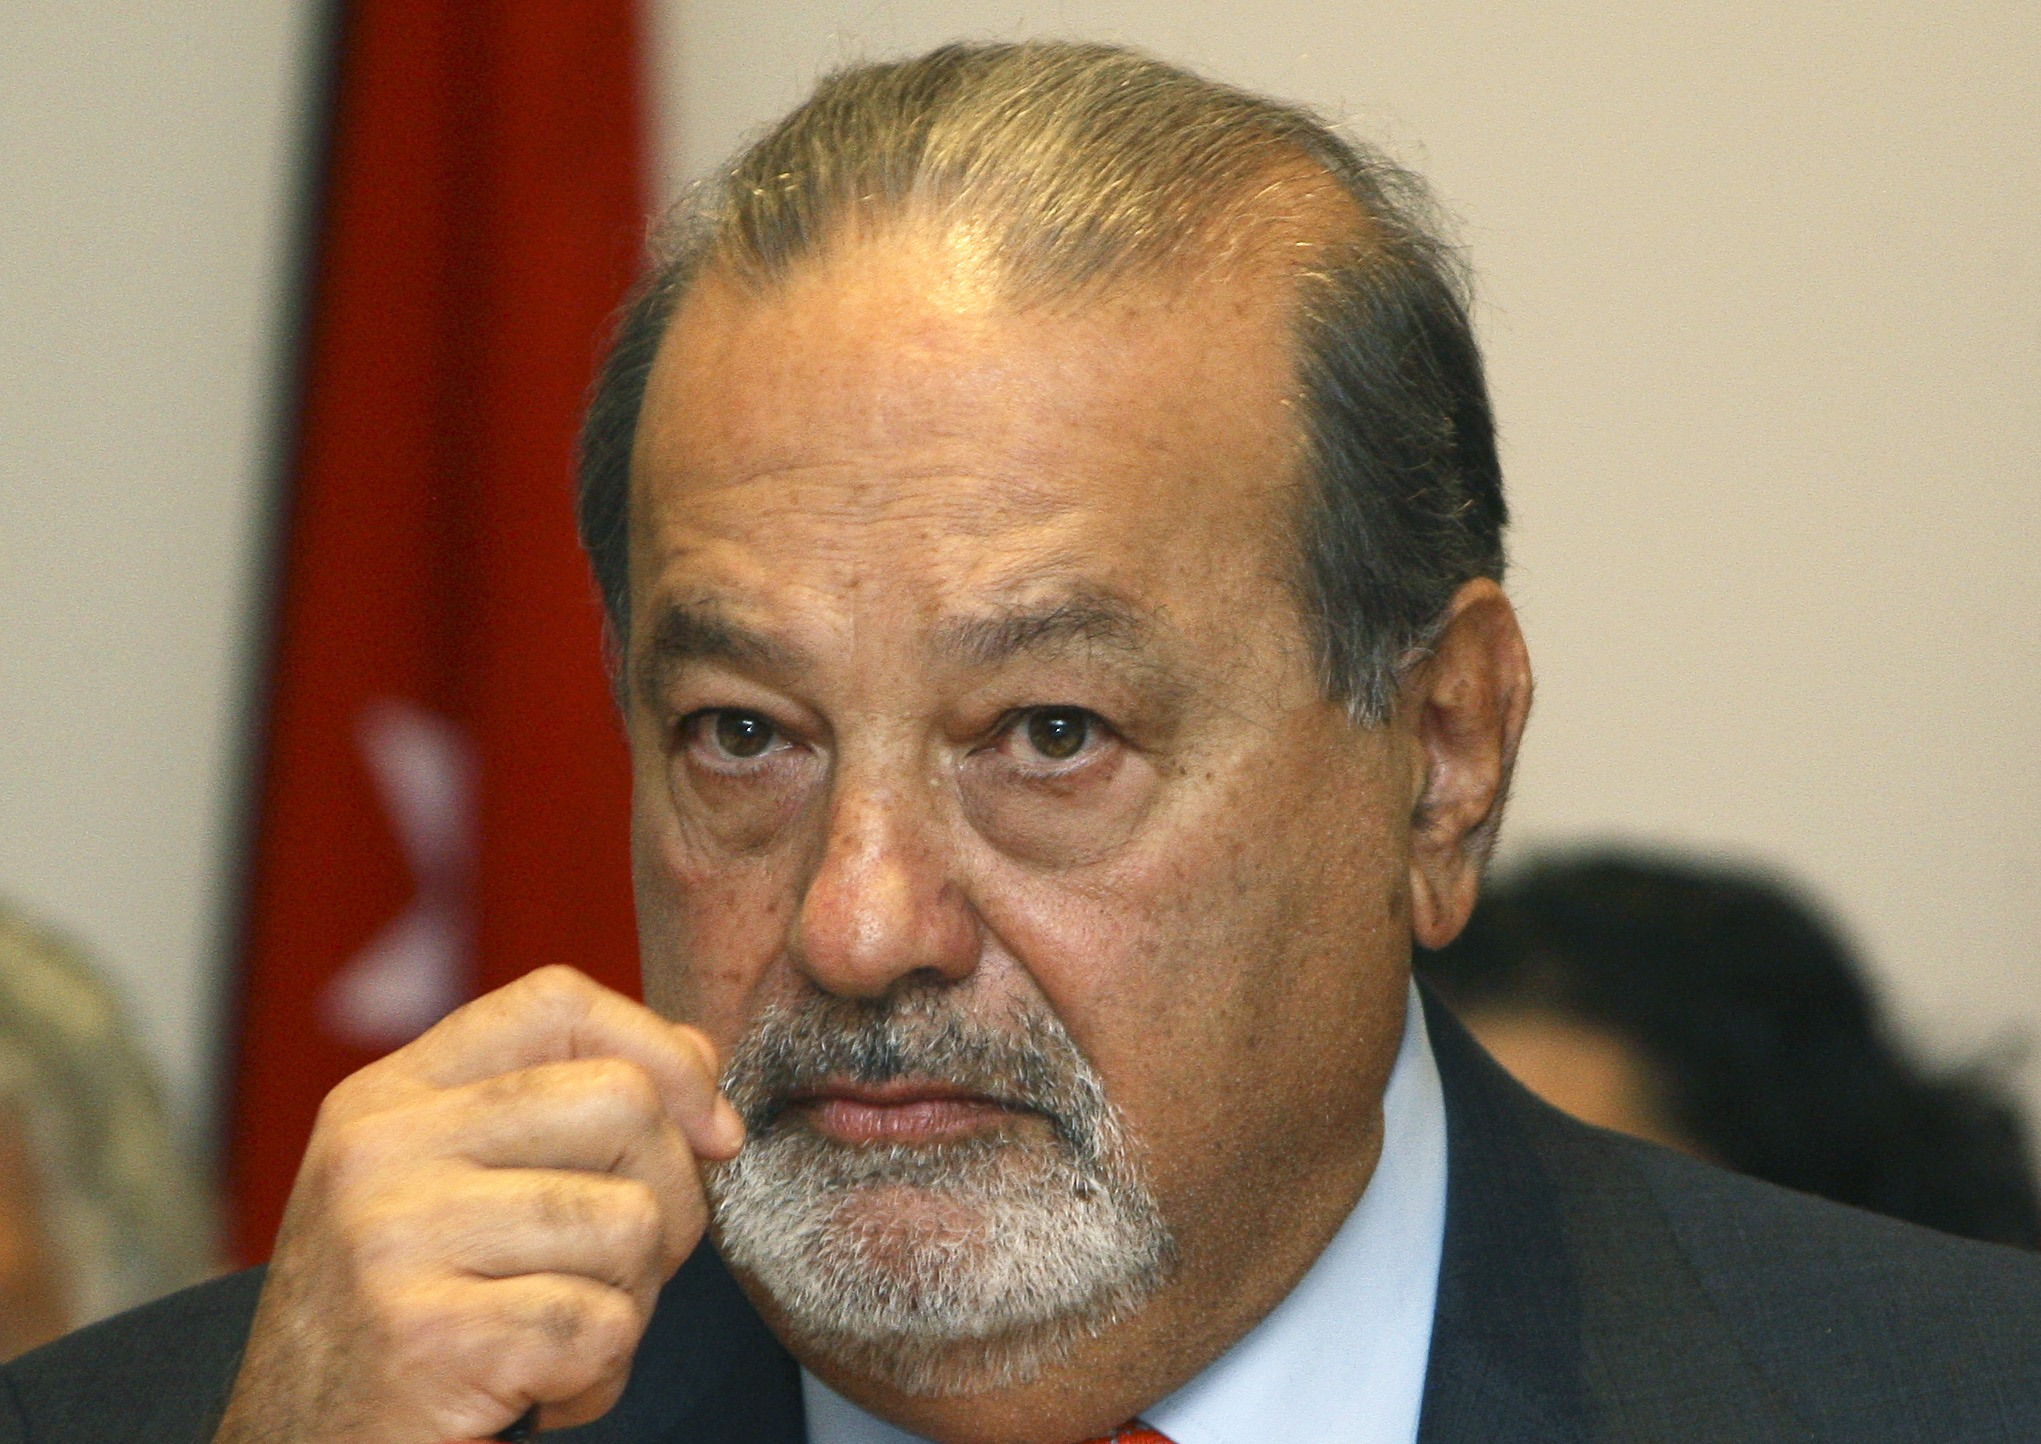 File photo of Mexican tycoon Carlos Slim attending a meeting with Lebanese ministers in Beirut